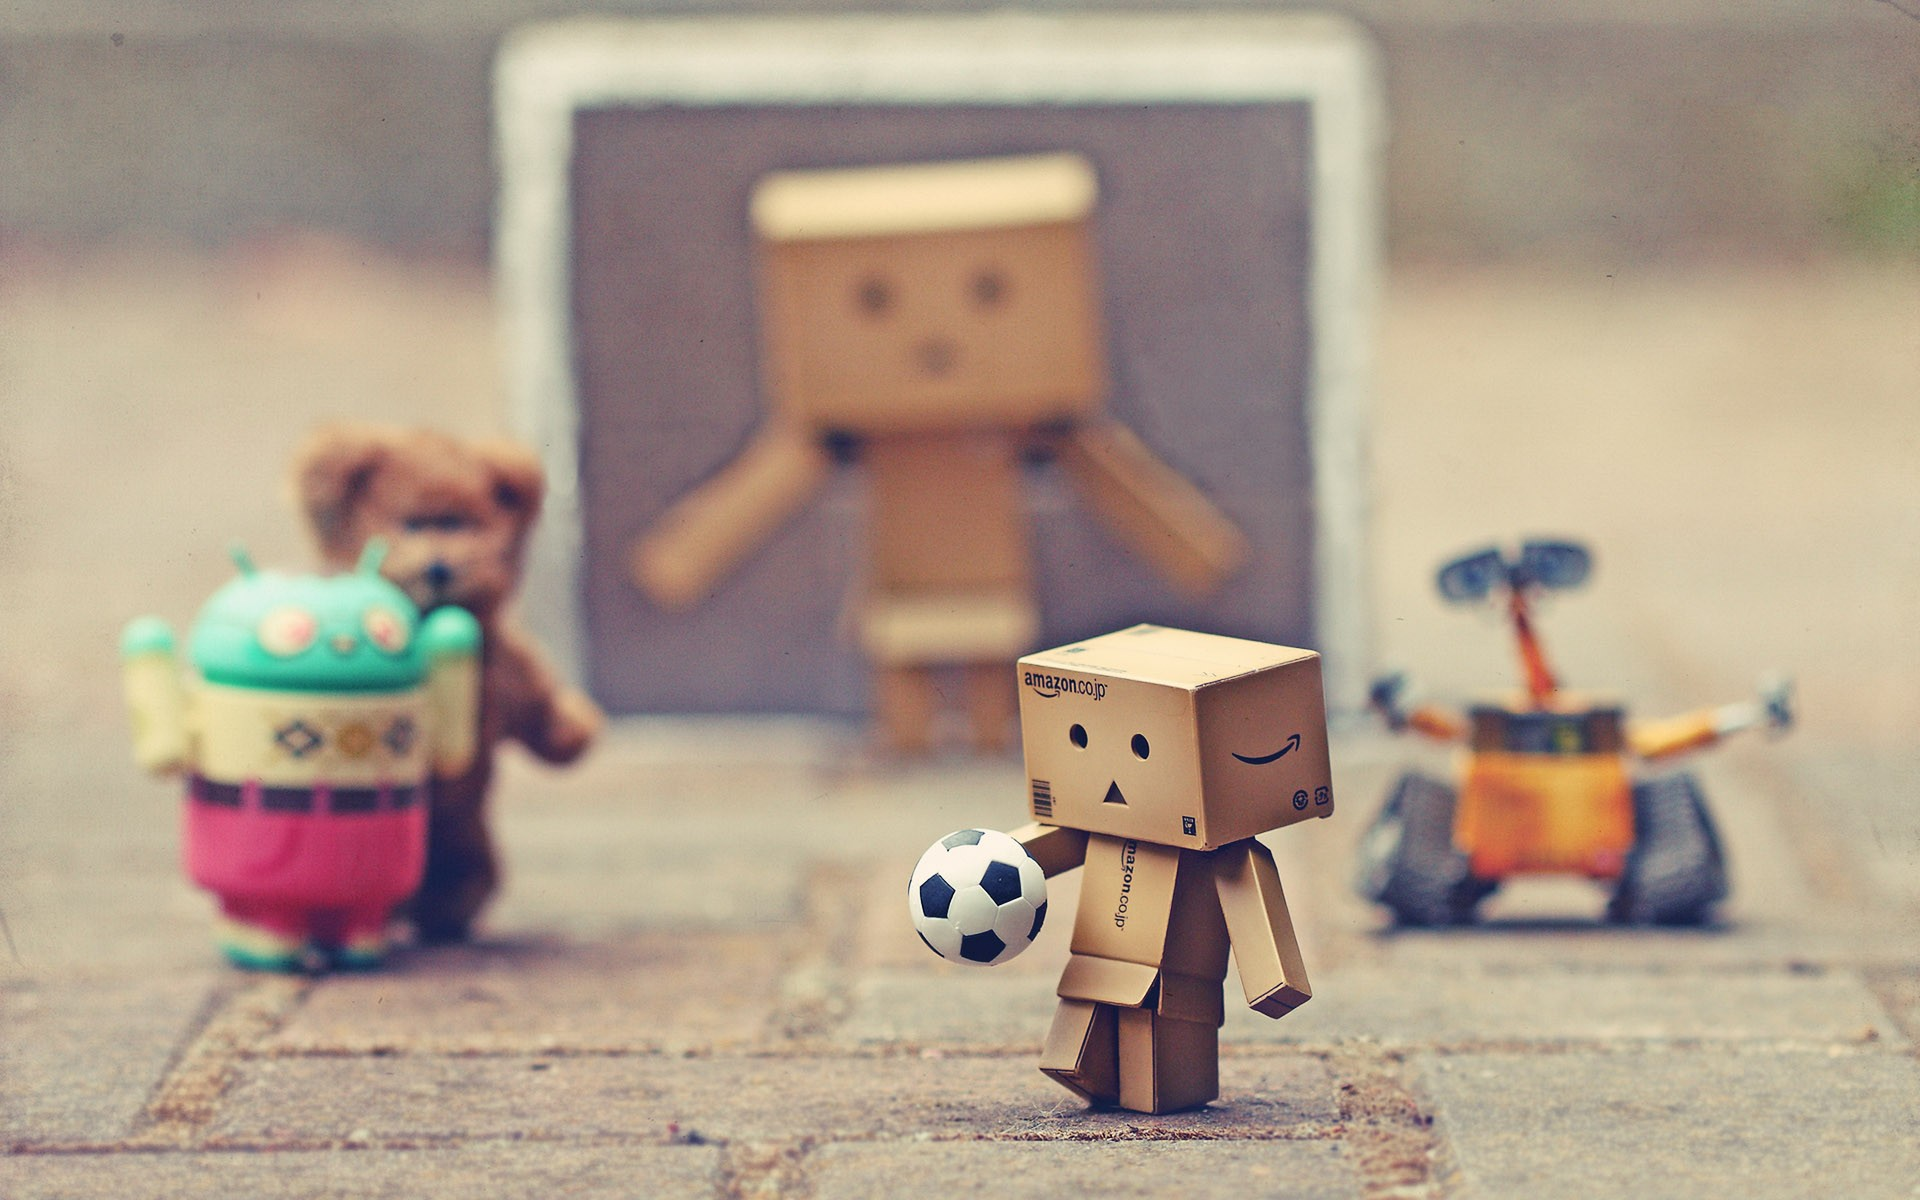 Nice HD Wallpapers Collection of Danbo - 1920x1200 px, 24/10/2015